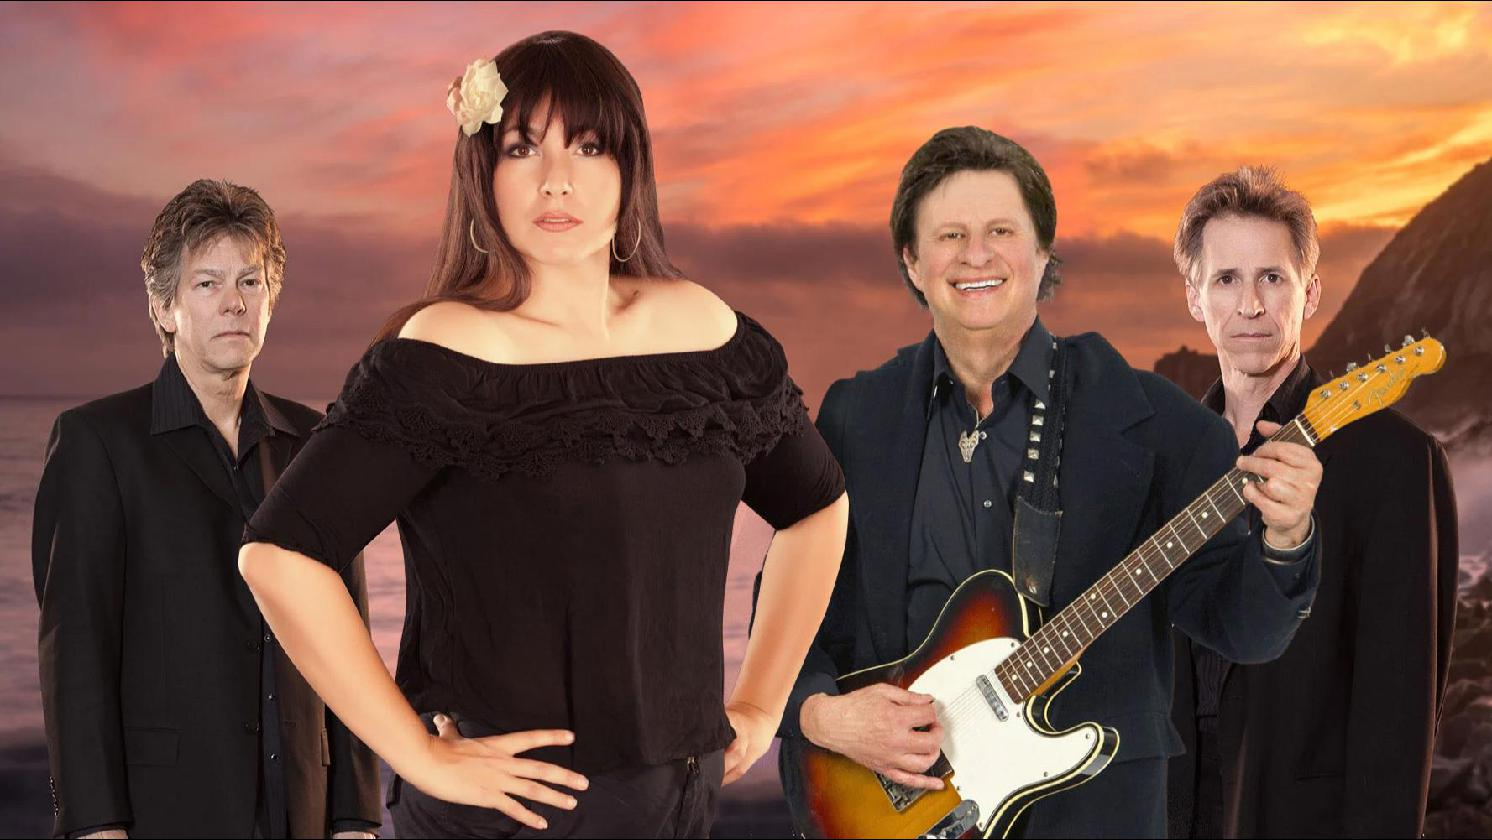 THE LINDA RONSTADT EXPERIENCE at THE HIGH STREET ARTS CENTER, MOORPARK, CA, SAT, SEPT 4, 7:30 PM, with MIGHTY CASH CATS JOHNNY CASH SHOW